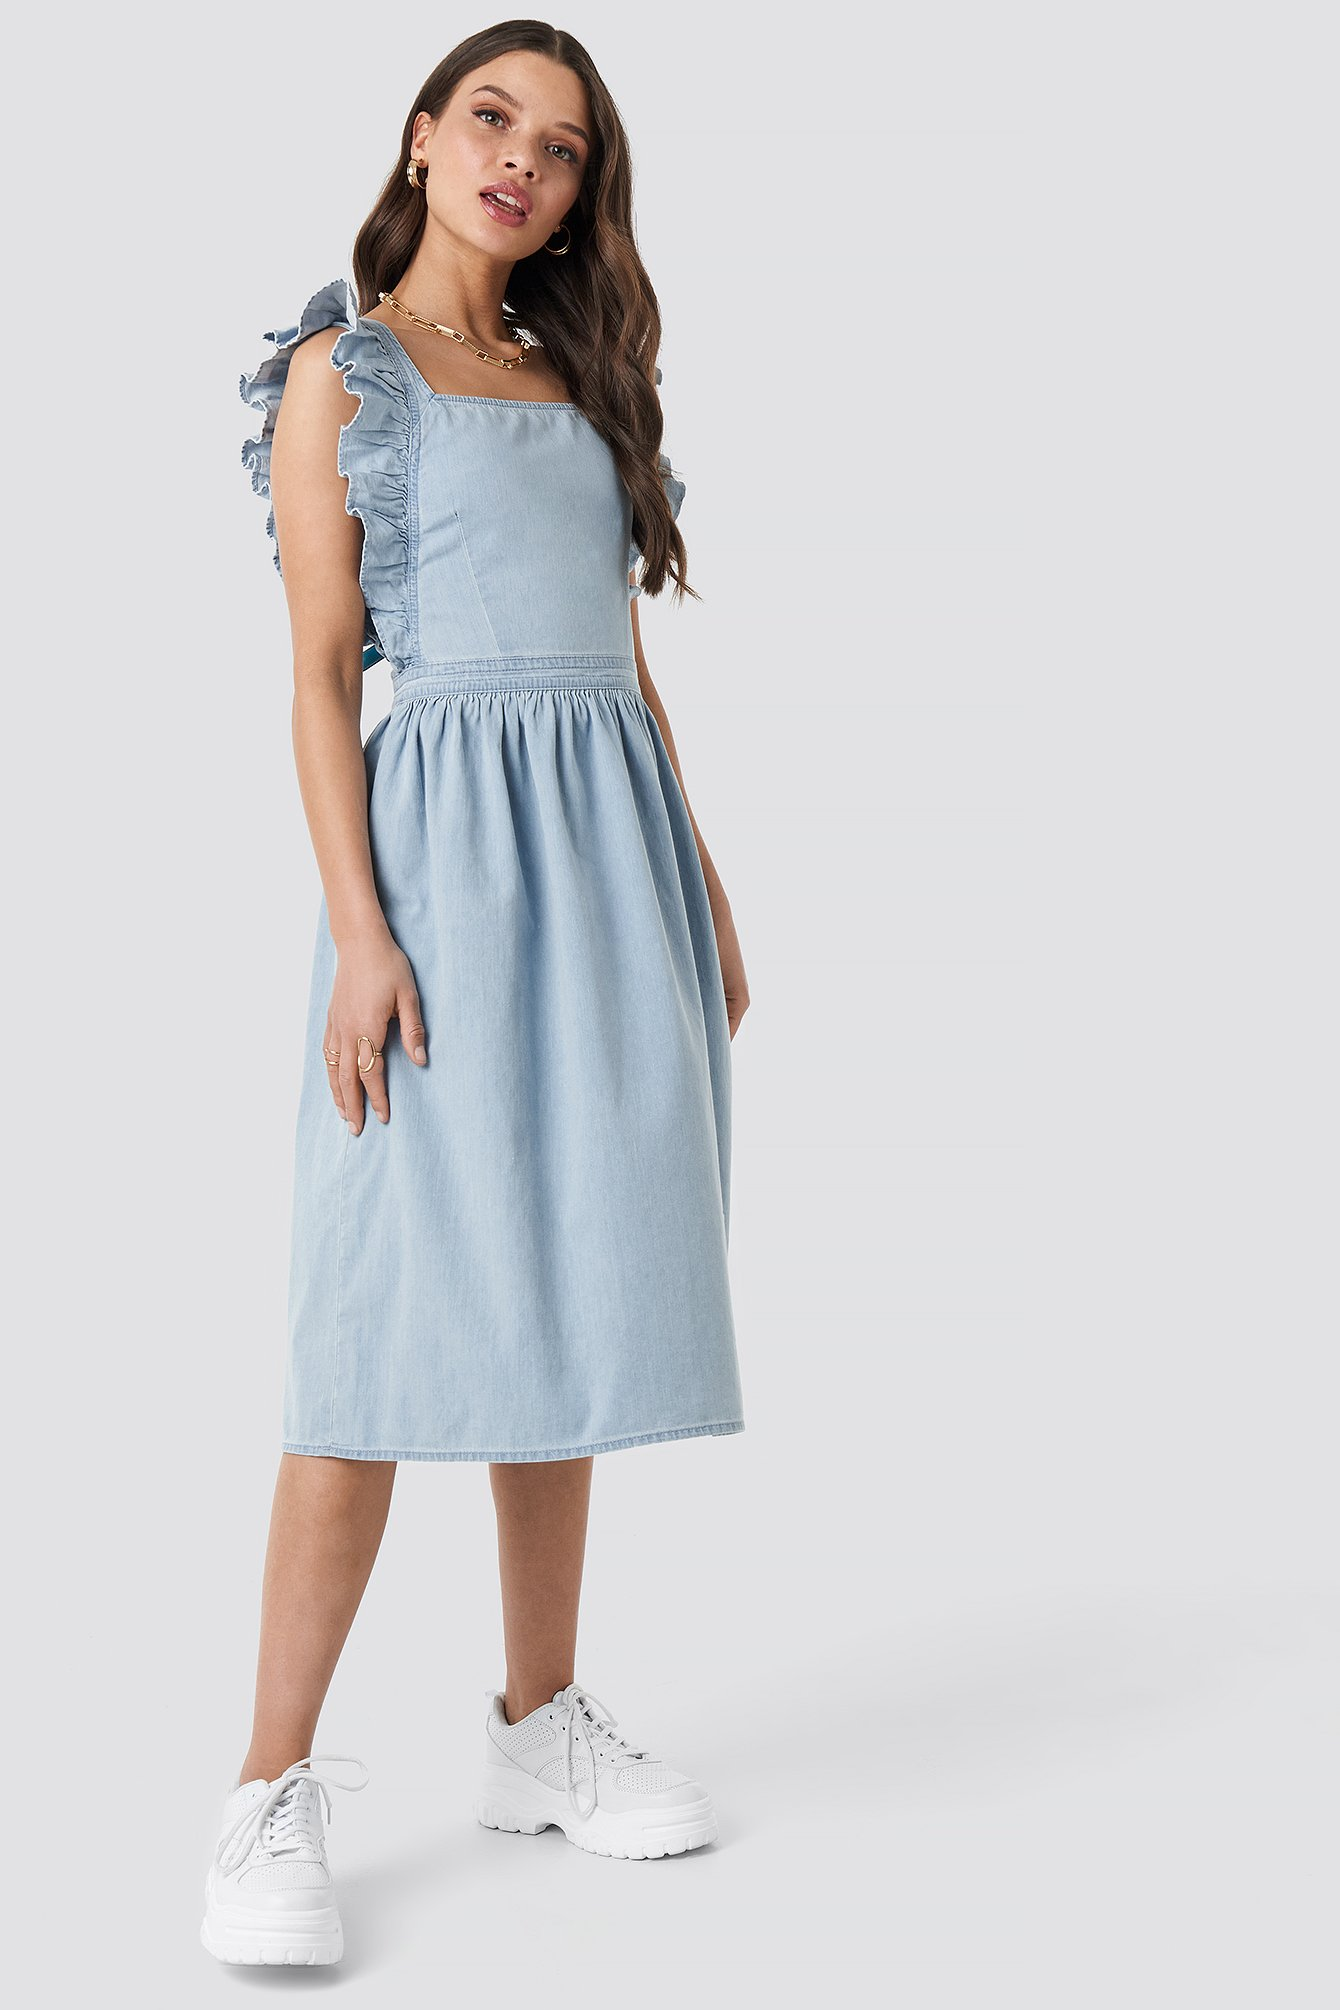 20b5859e04 Denim Pinafore Dress Malaysia - Data Dynamic AG